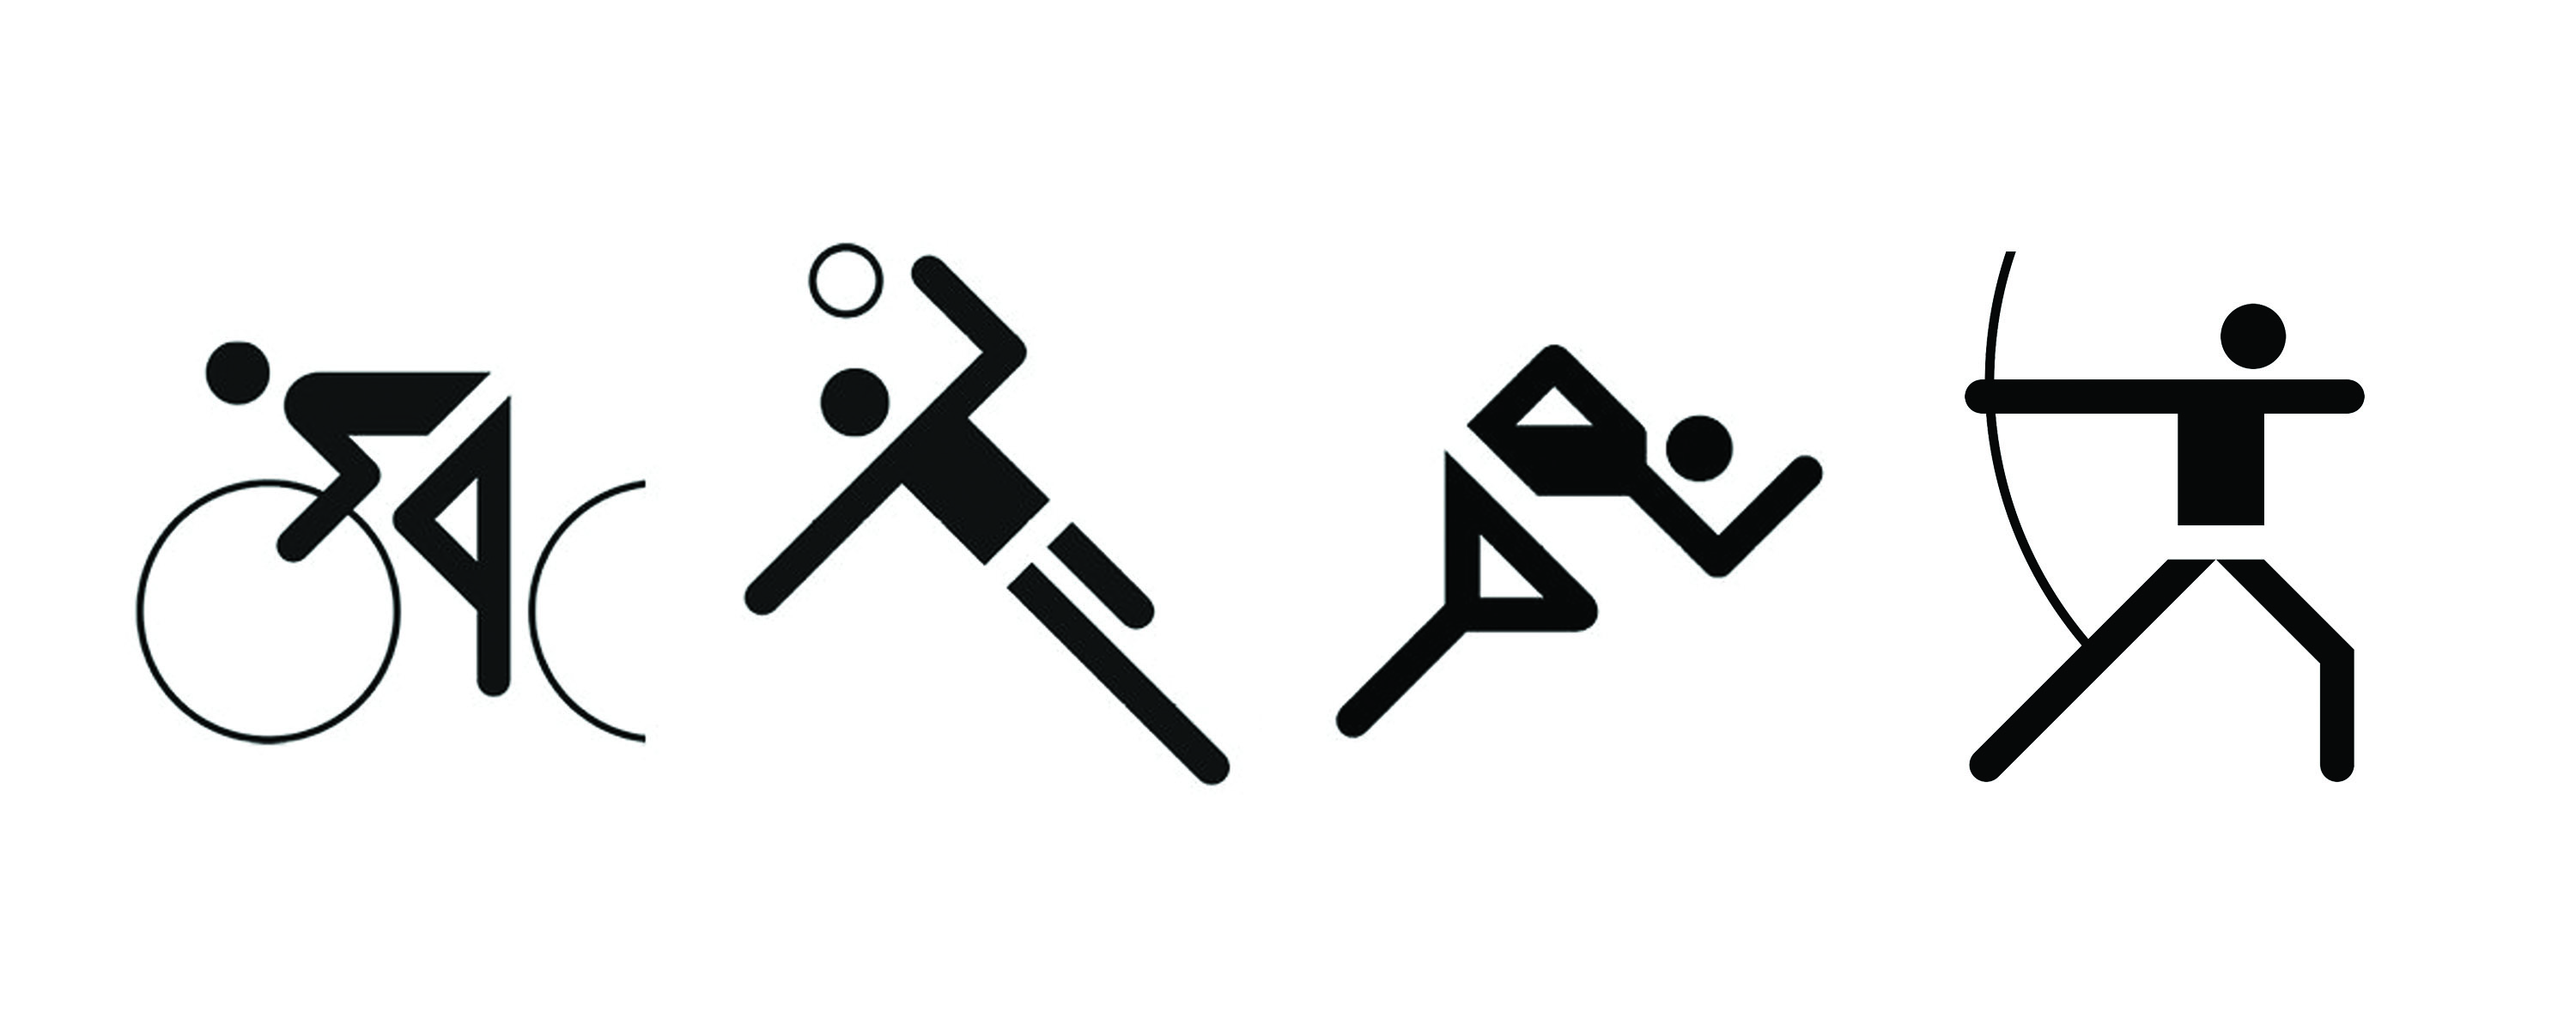 Figure 12.: Aicher's anonymous figures representing the athletes who competed in the 1972 Olympic Games in Munich were supposed to be inclusive of everyone. Even though his geometric body alphabet represents sports played by both genders, why is it that viewers ONLY see male competitors, rather than women athletes? http://www.aicher-pictograms.com (accessed May 25, 2016).